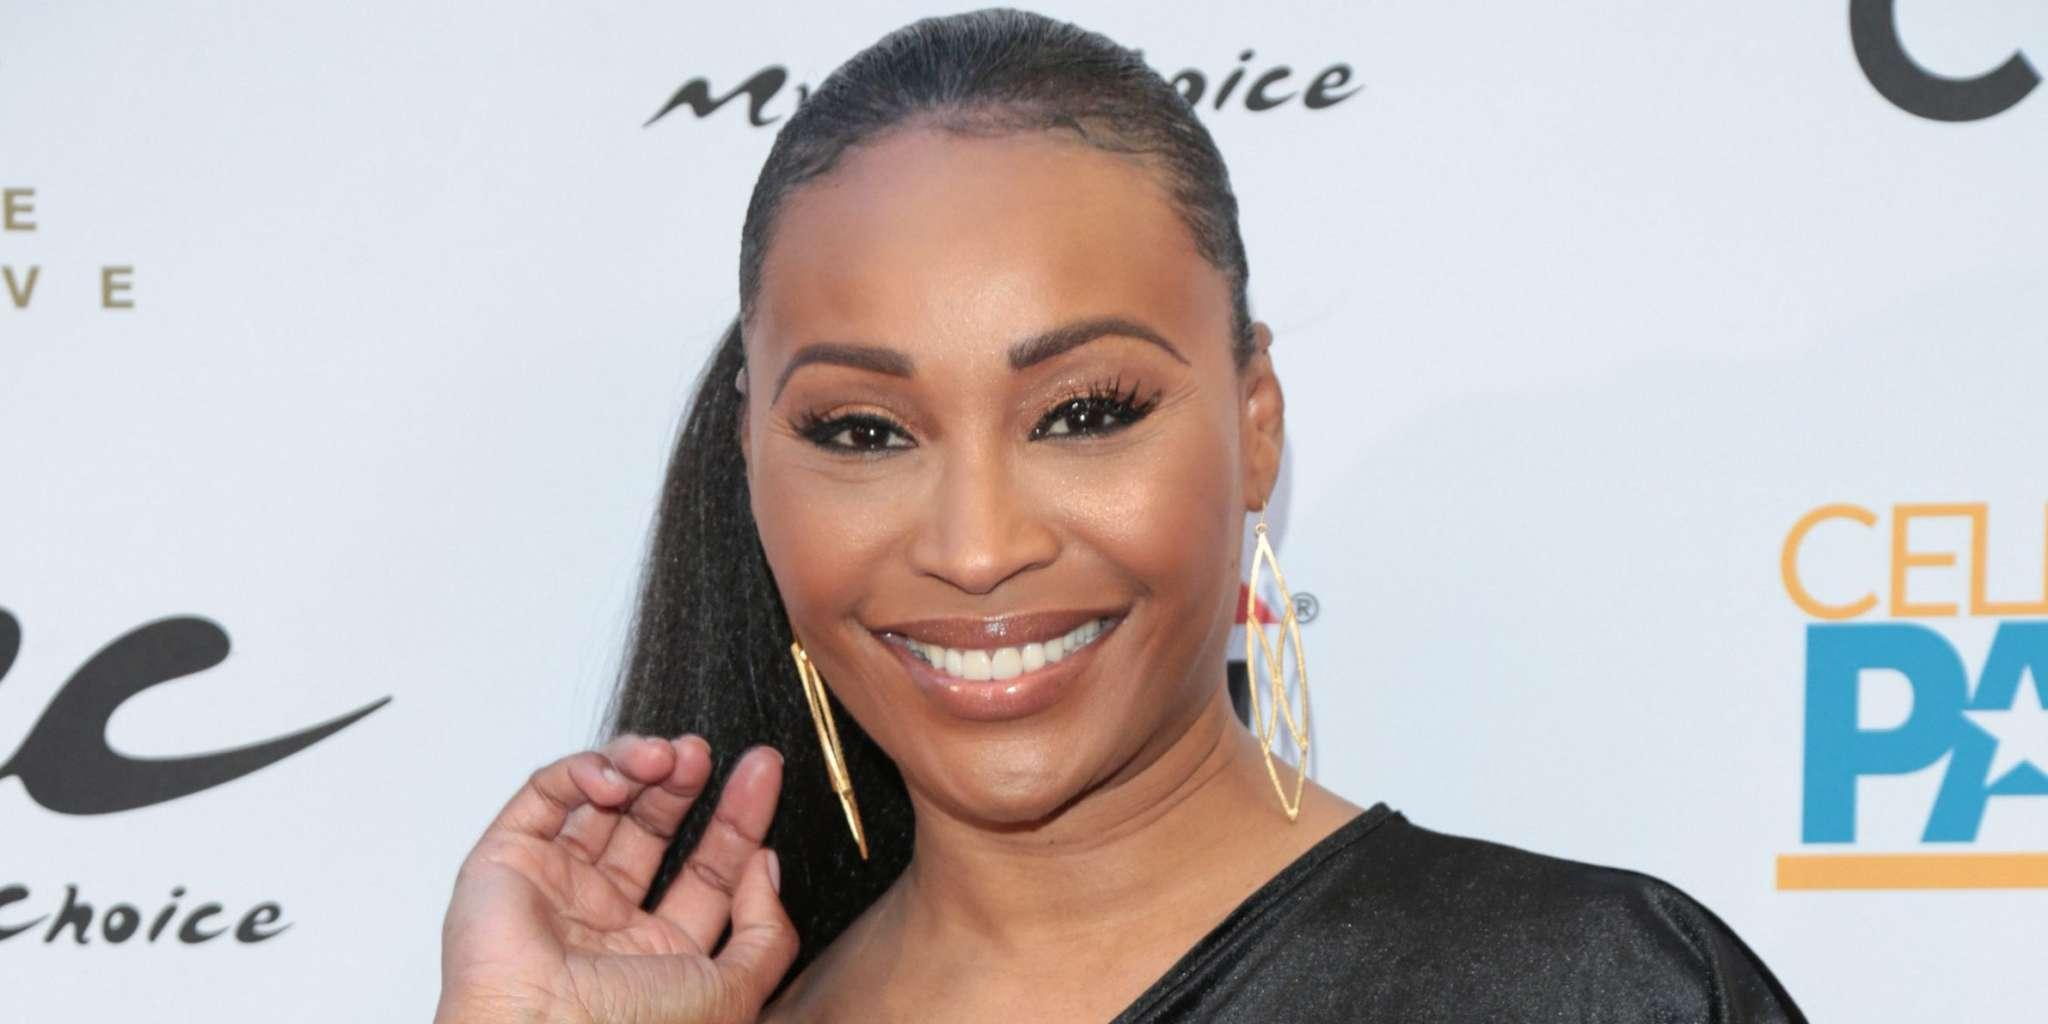 Cynthia Bailey Dropped A Message About Meeting The President